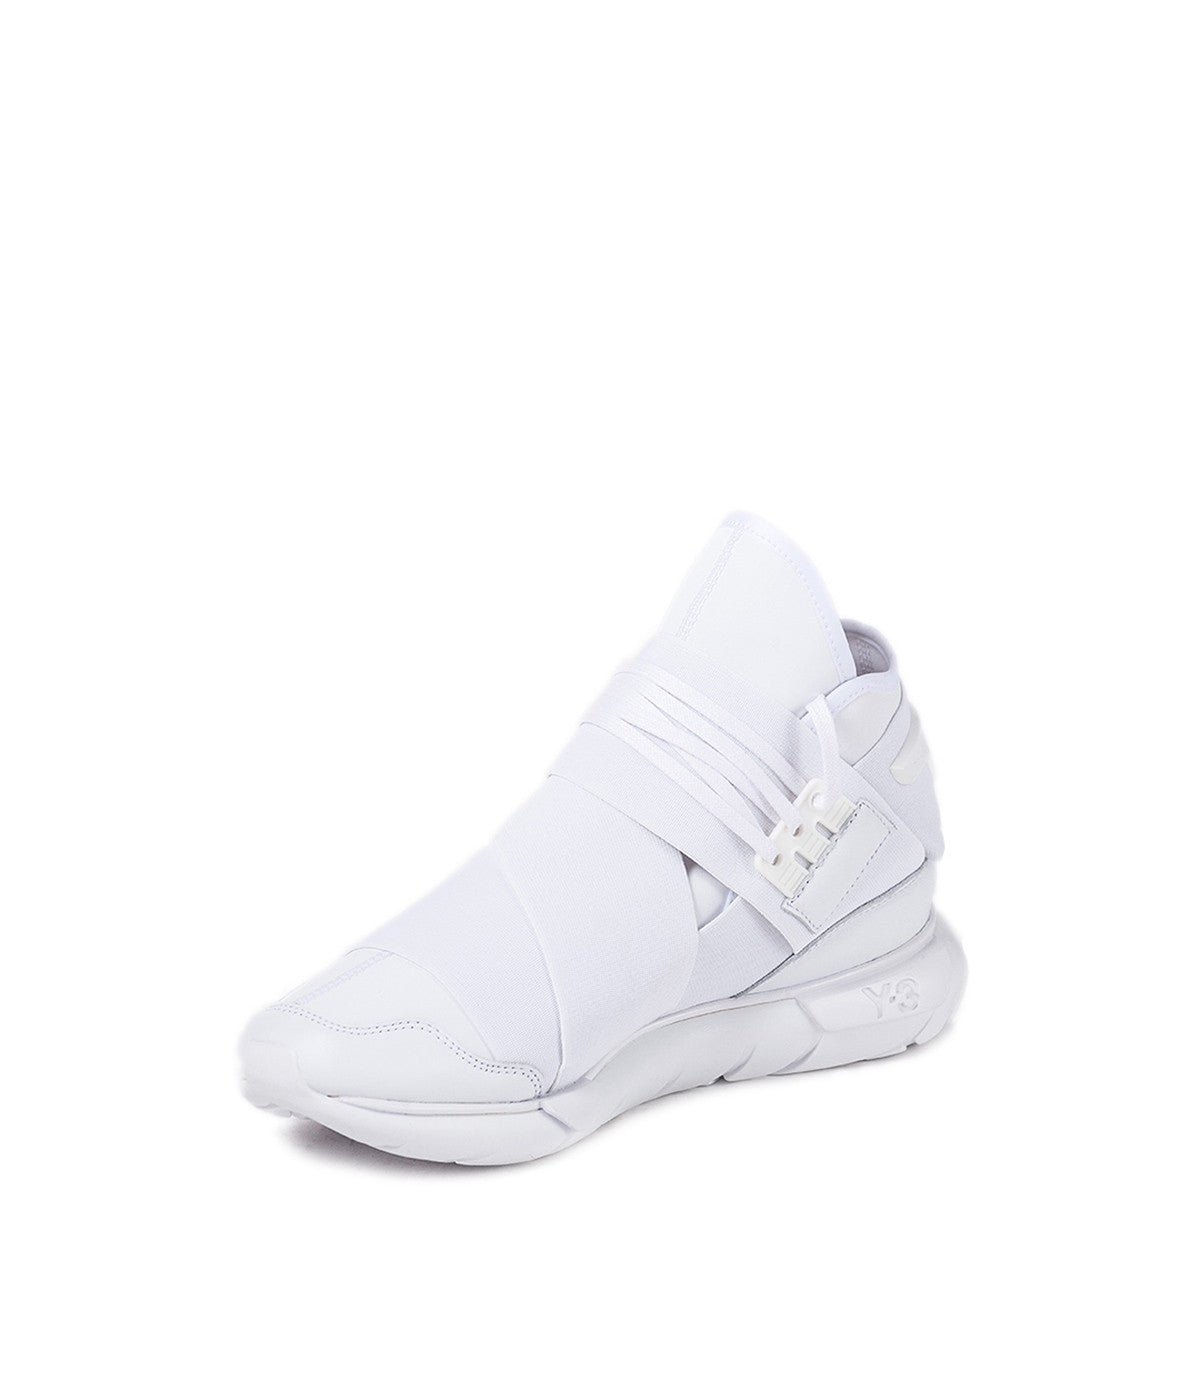 Qasa High-Top Sneakers